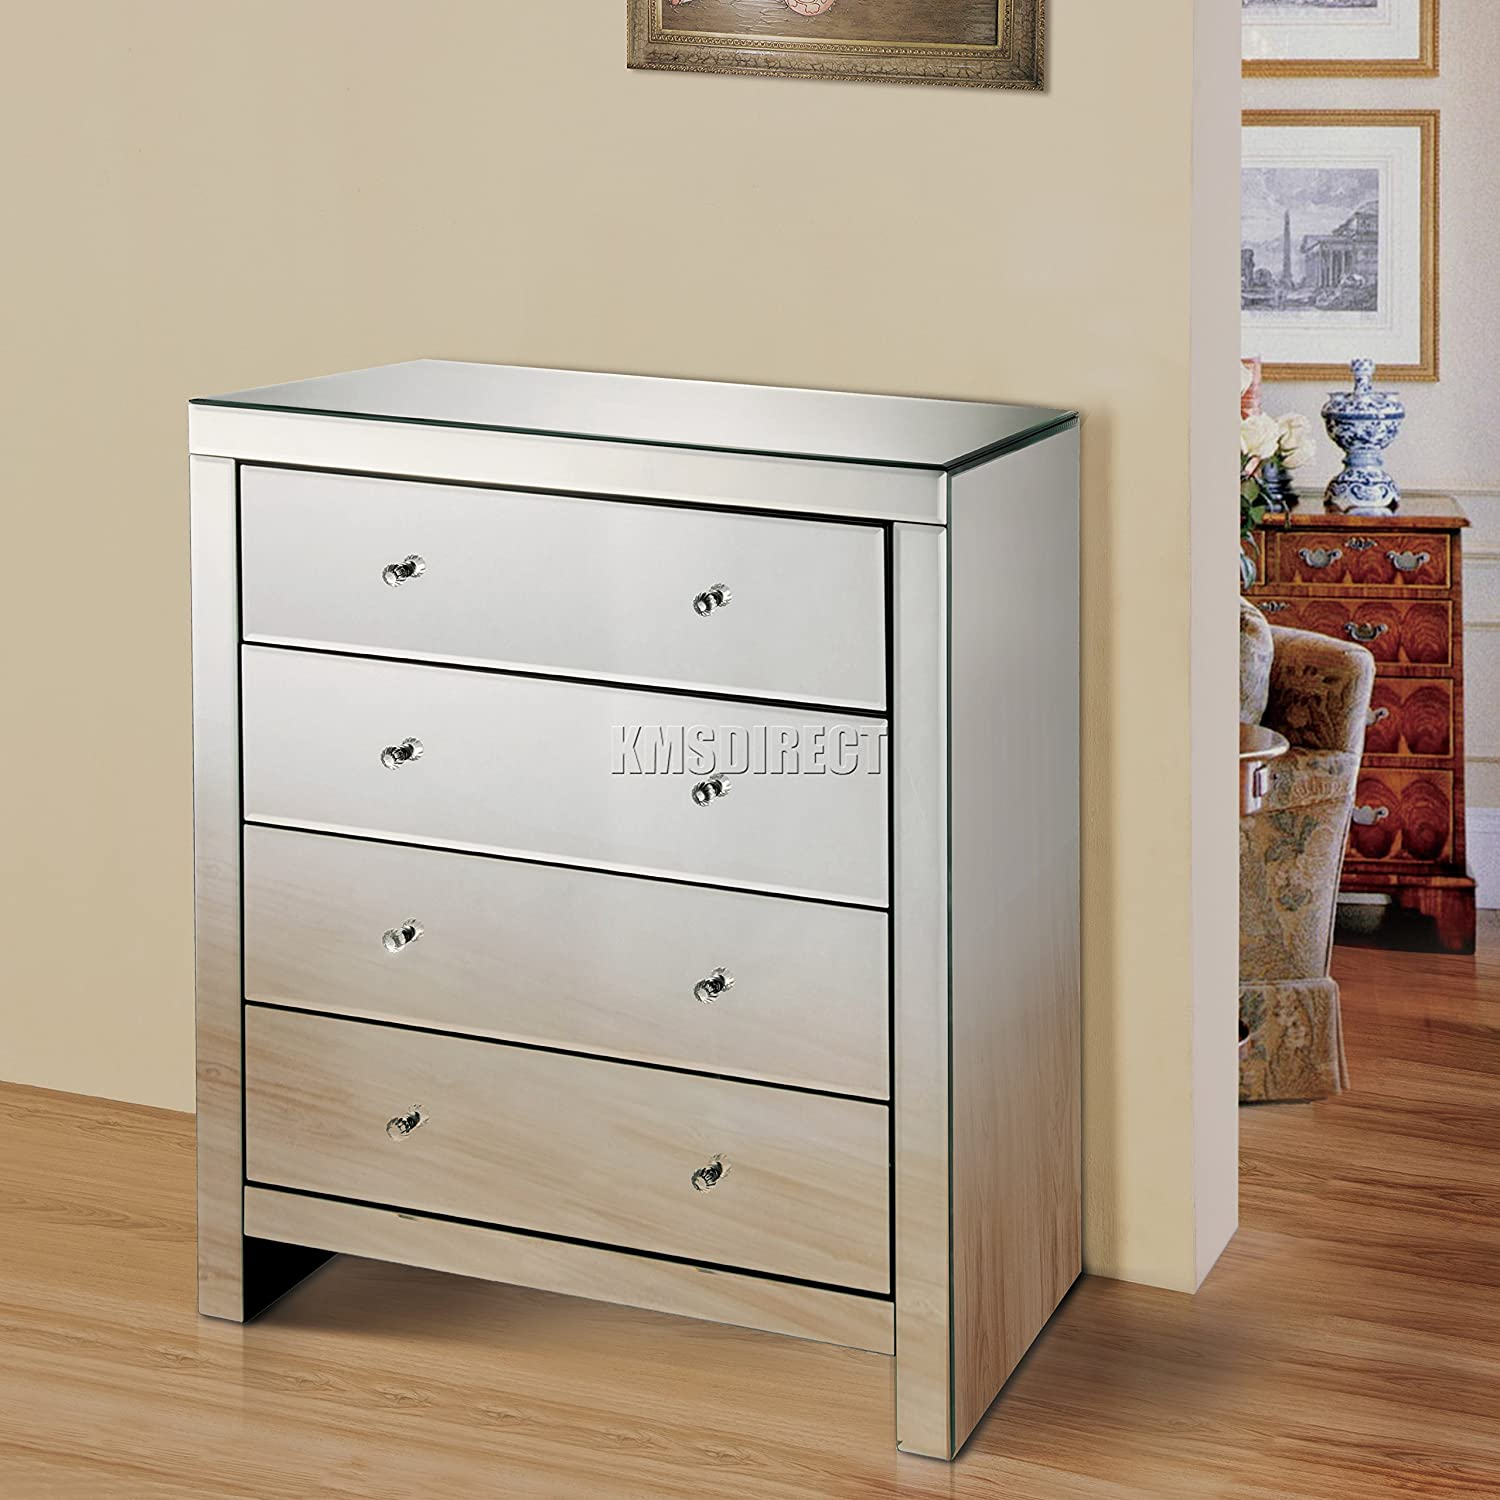 Foxhunter Westwood Mirrored Furniture Glass 4 Drawer Chest Cabinet